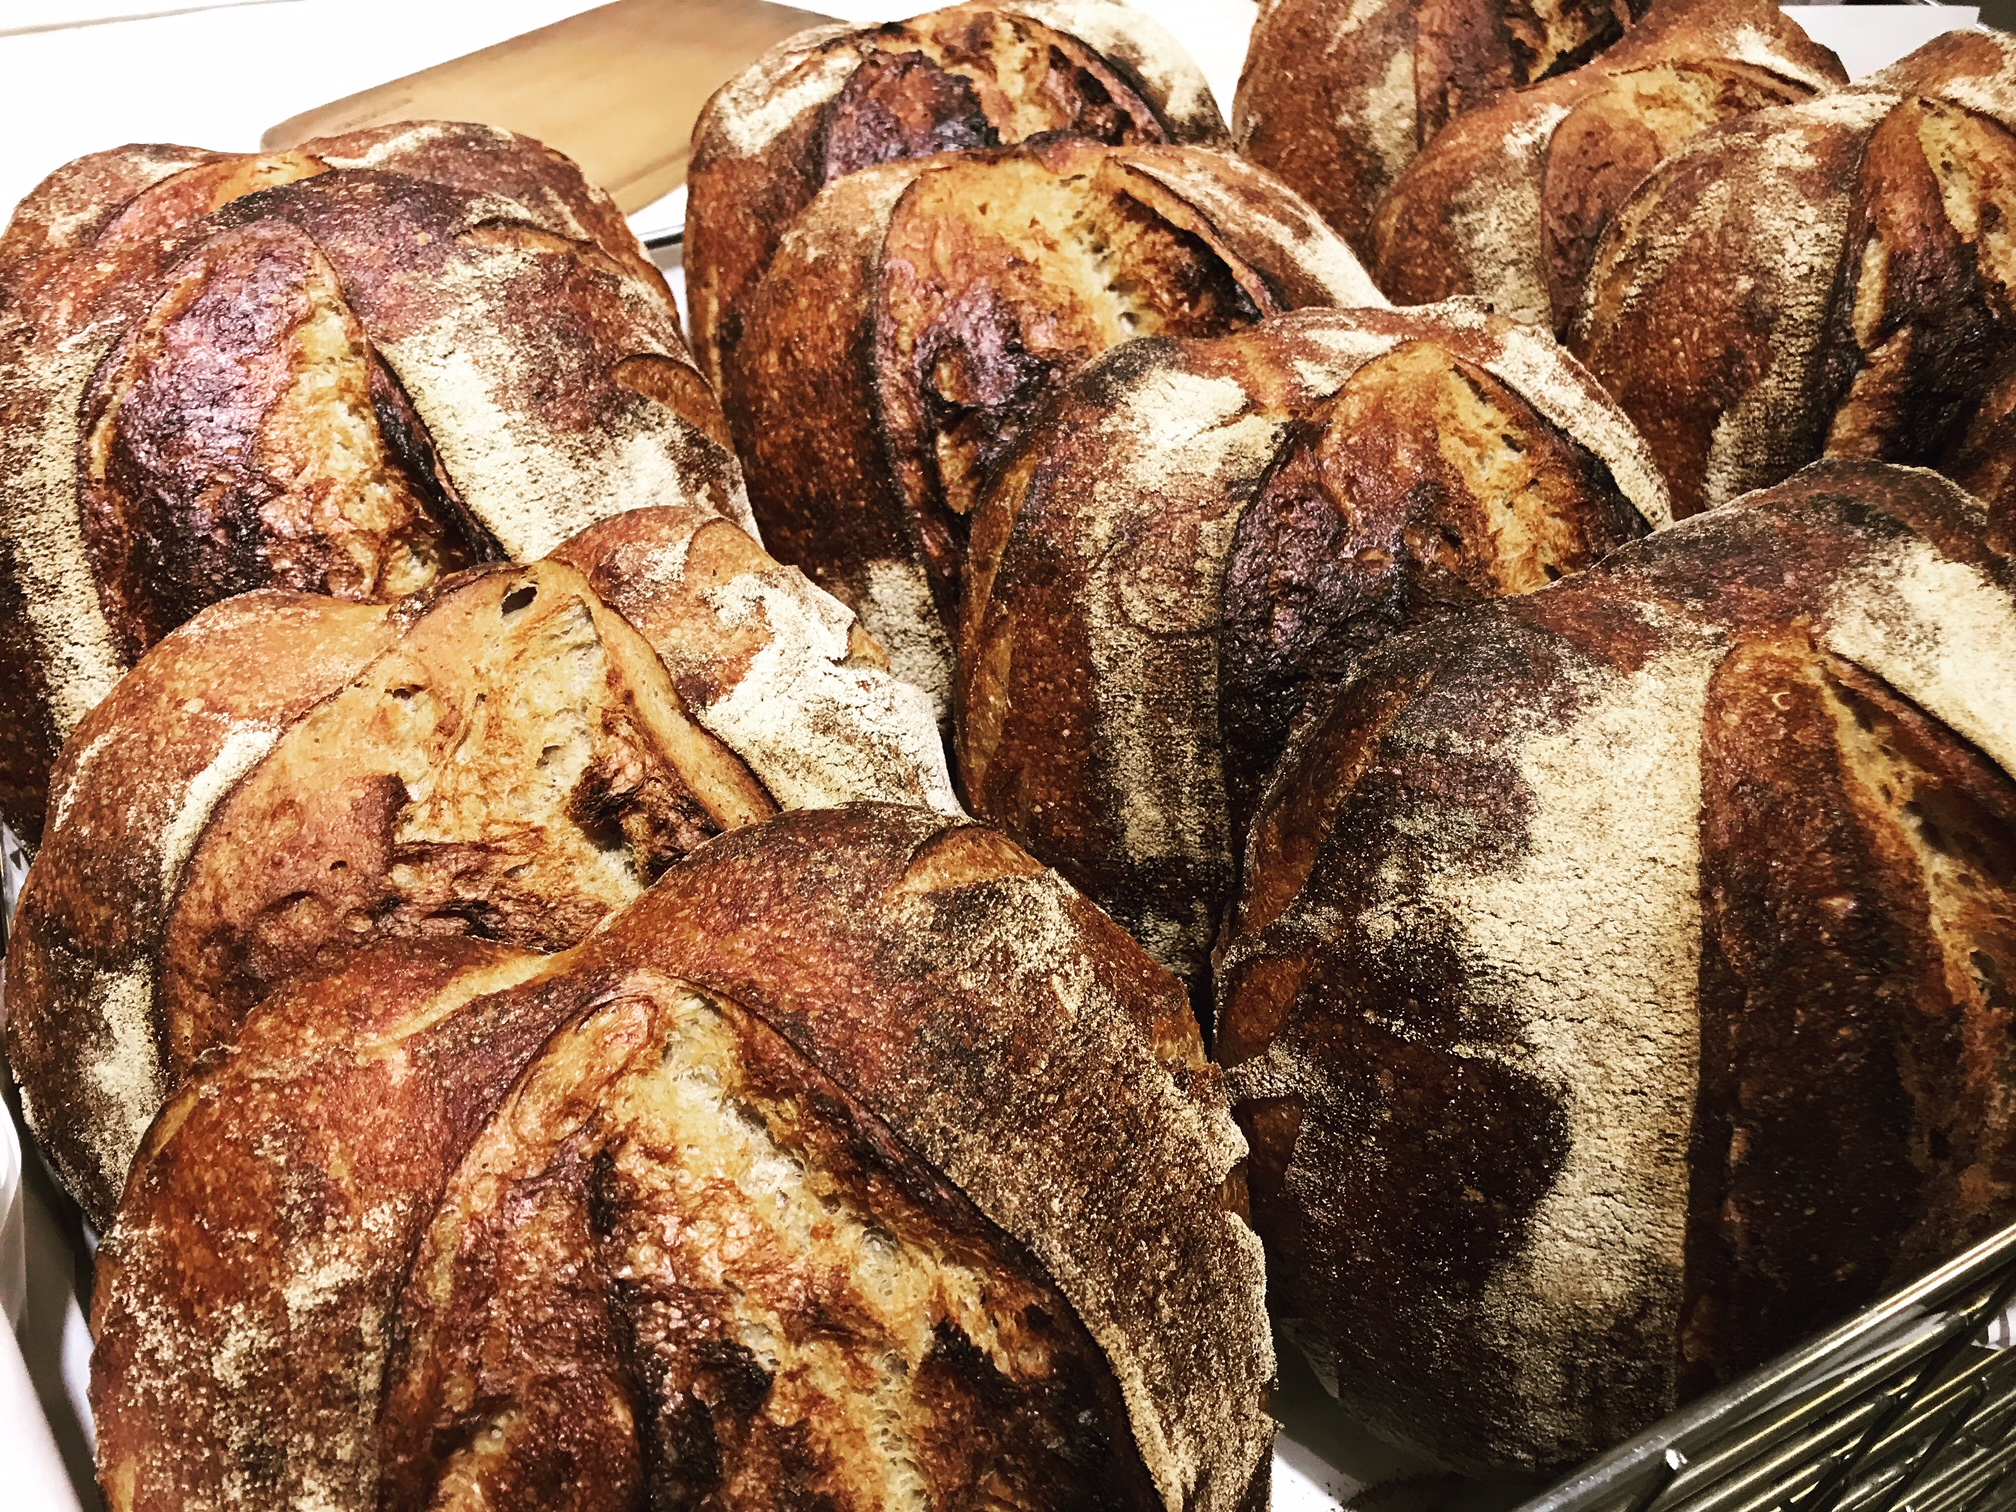 Order your bread and pastries before 7.30am - Collect and pay at the bakery